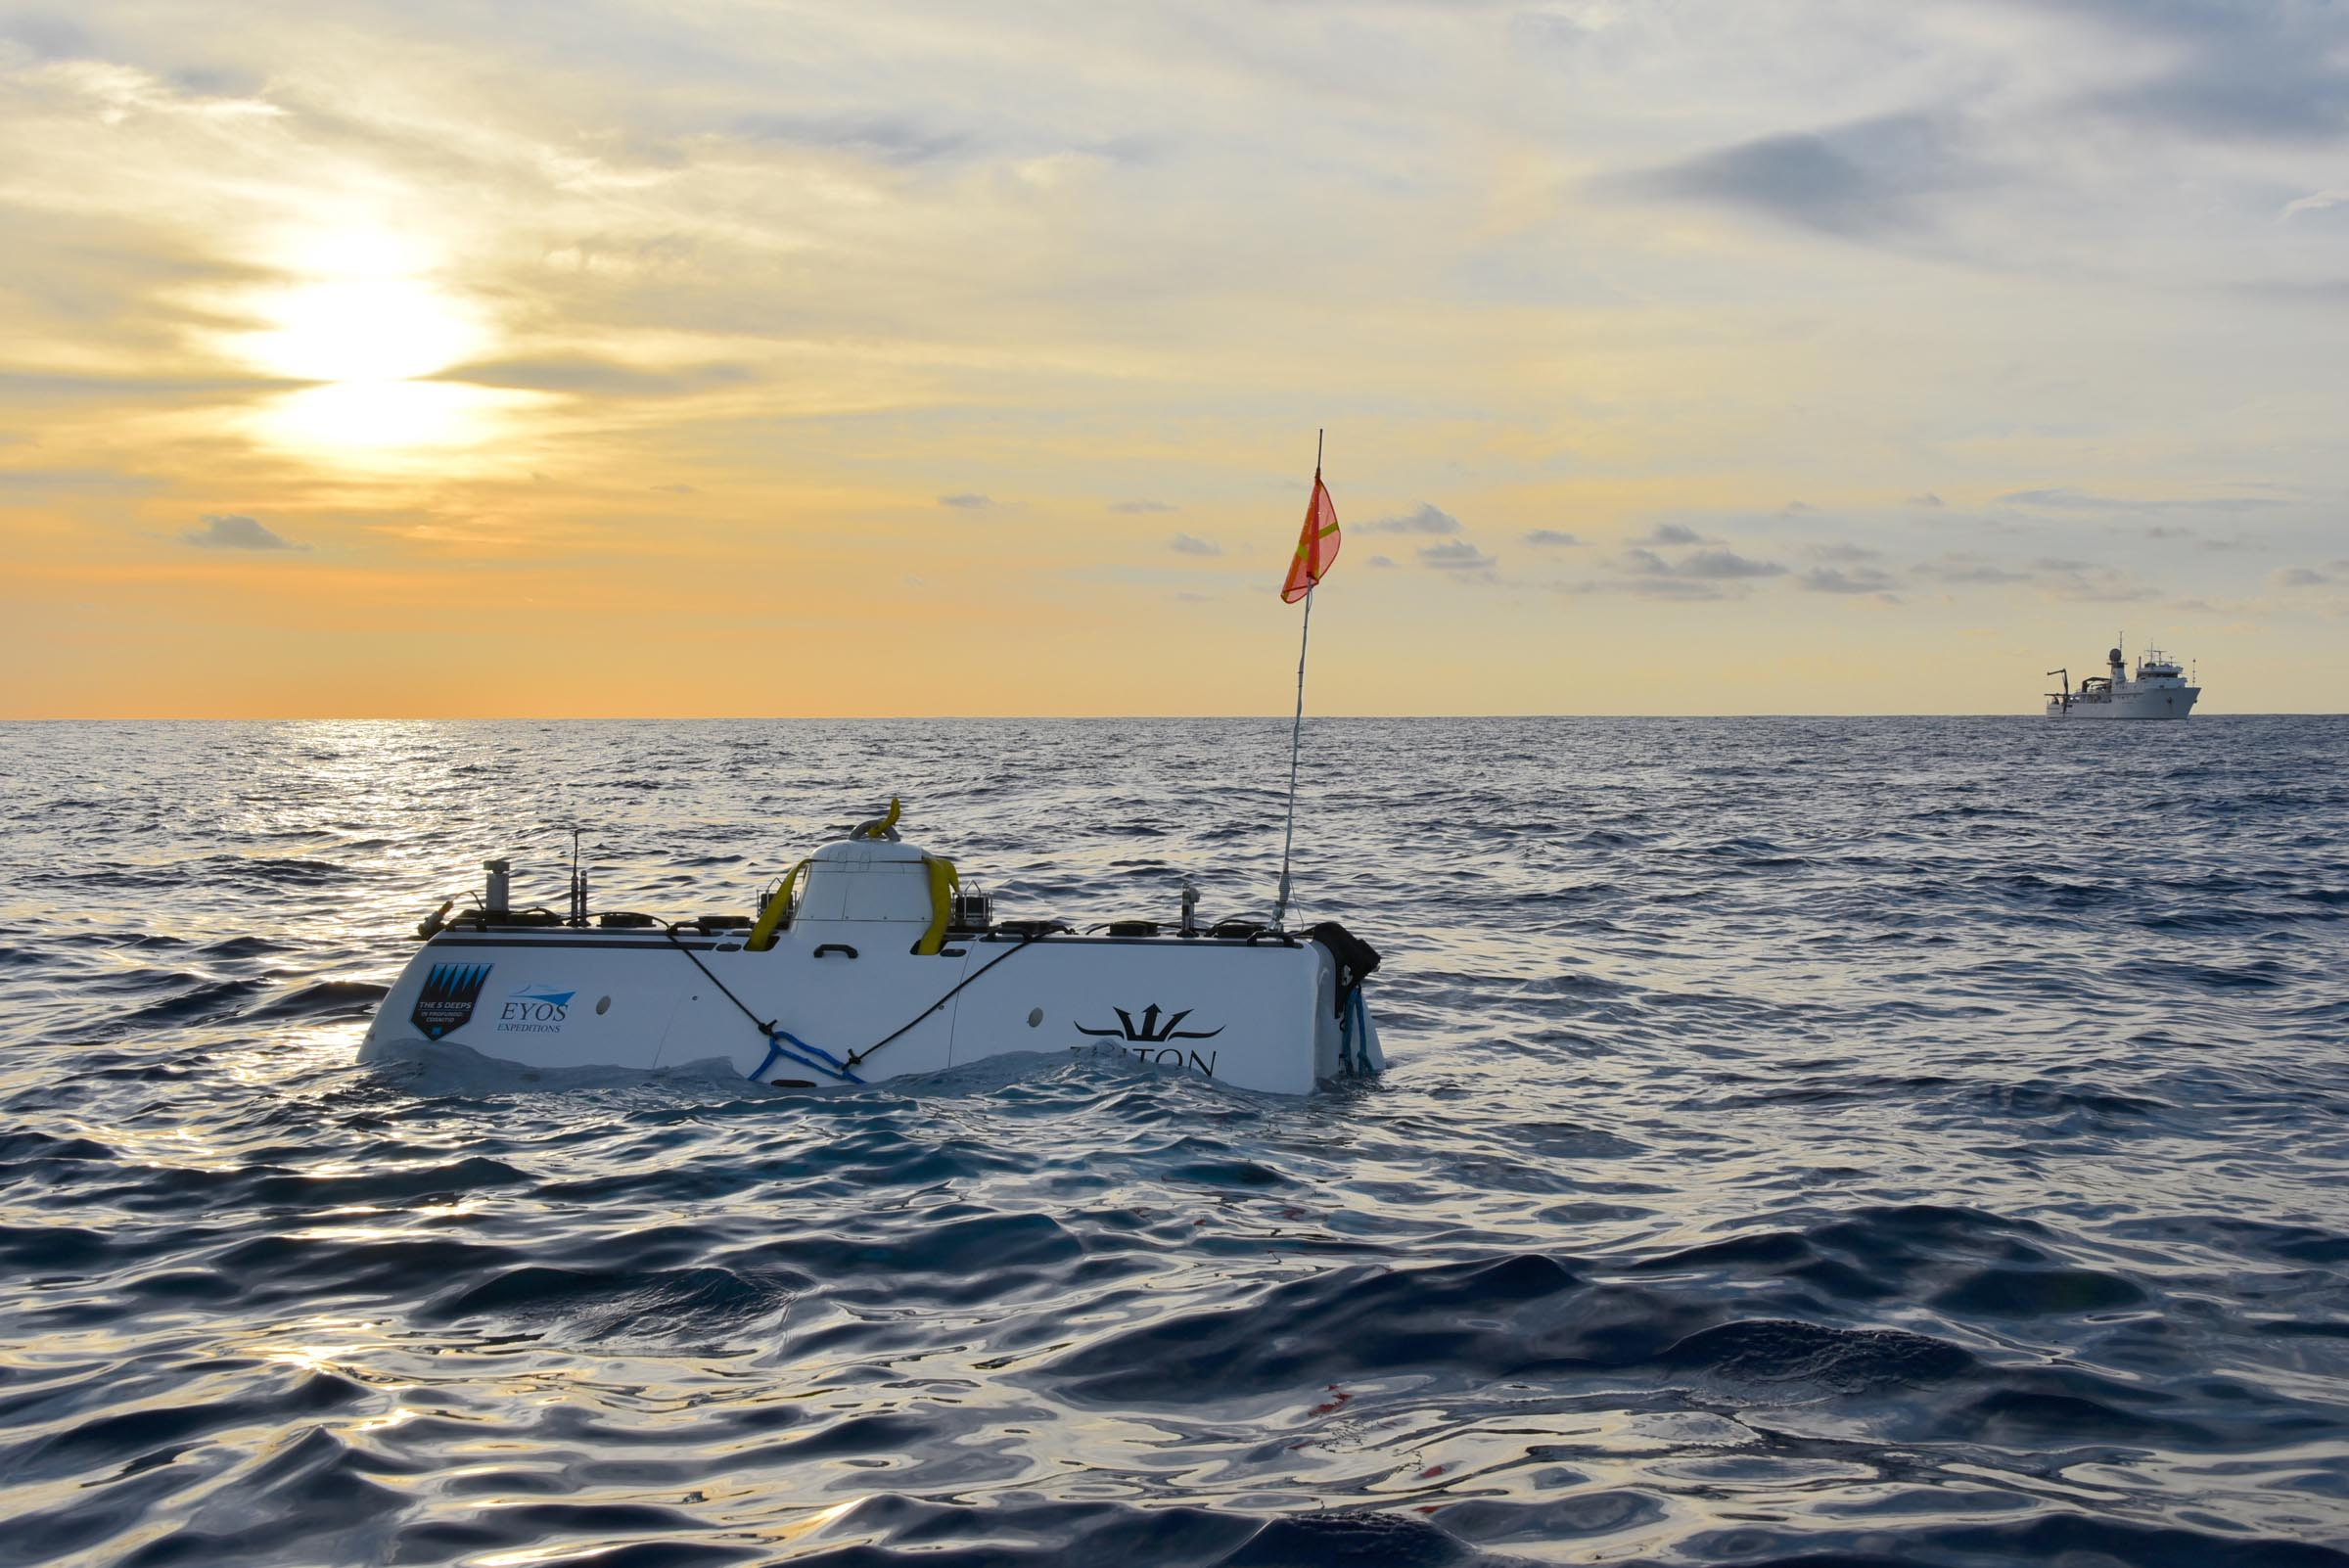 The DSV Limiting Factor surfaces after record-breaking solo dive to the deepest point of the Indian Ocean